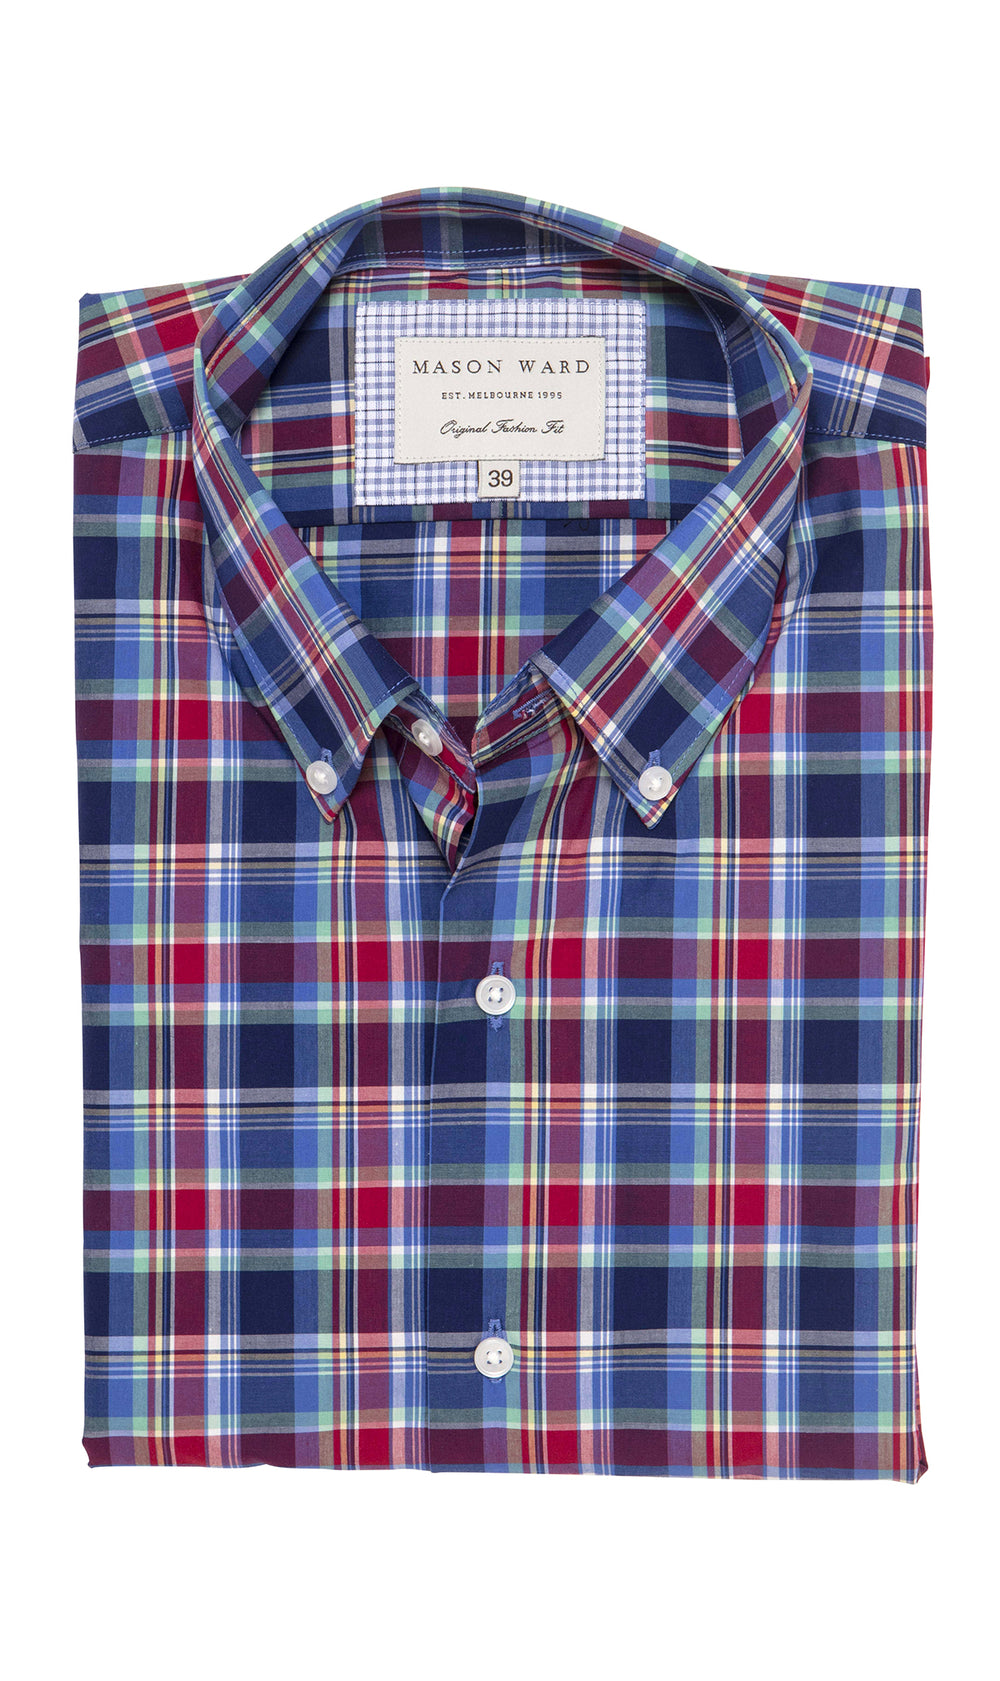 Mason Ward Trelleborg Casual Check Fashion Fit/ Regular Cuff Shirt